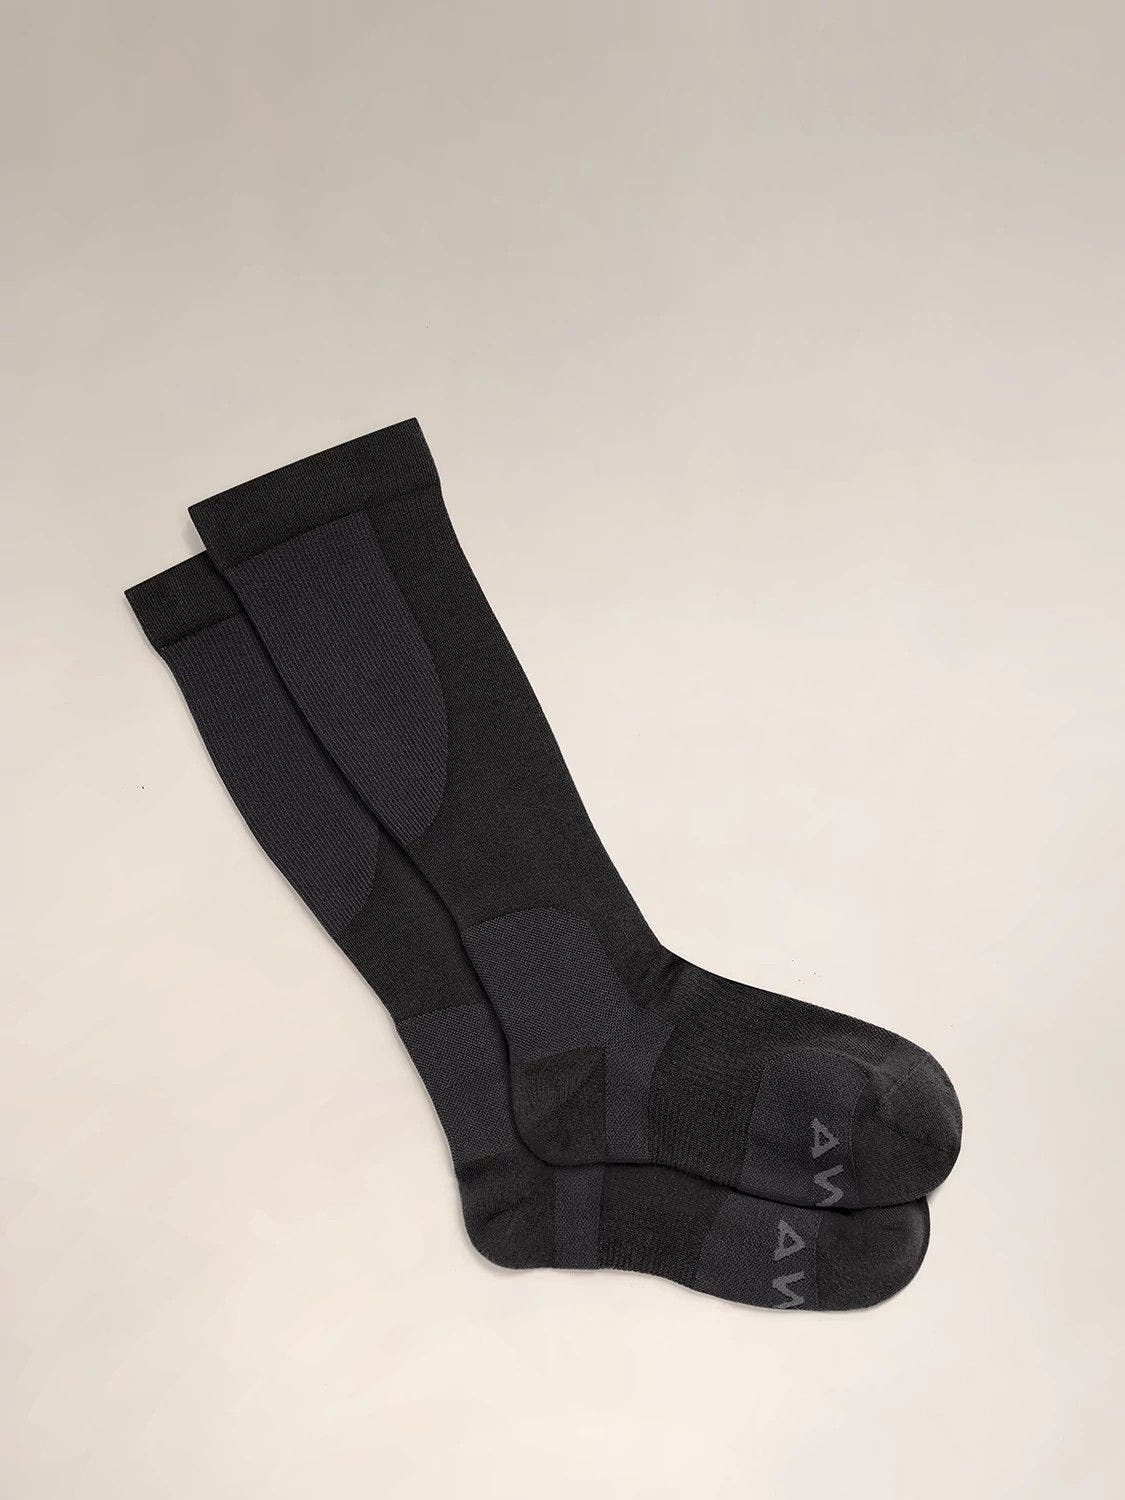 A pair of black travel compression socks.